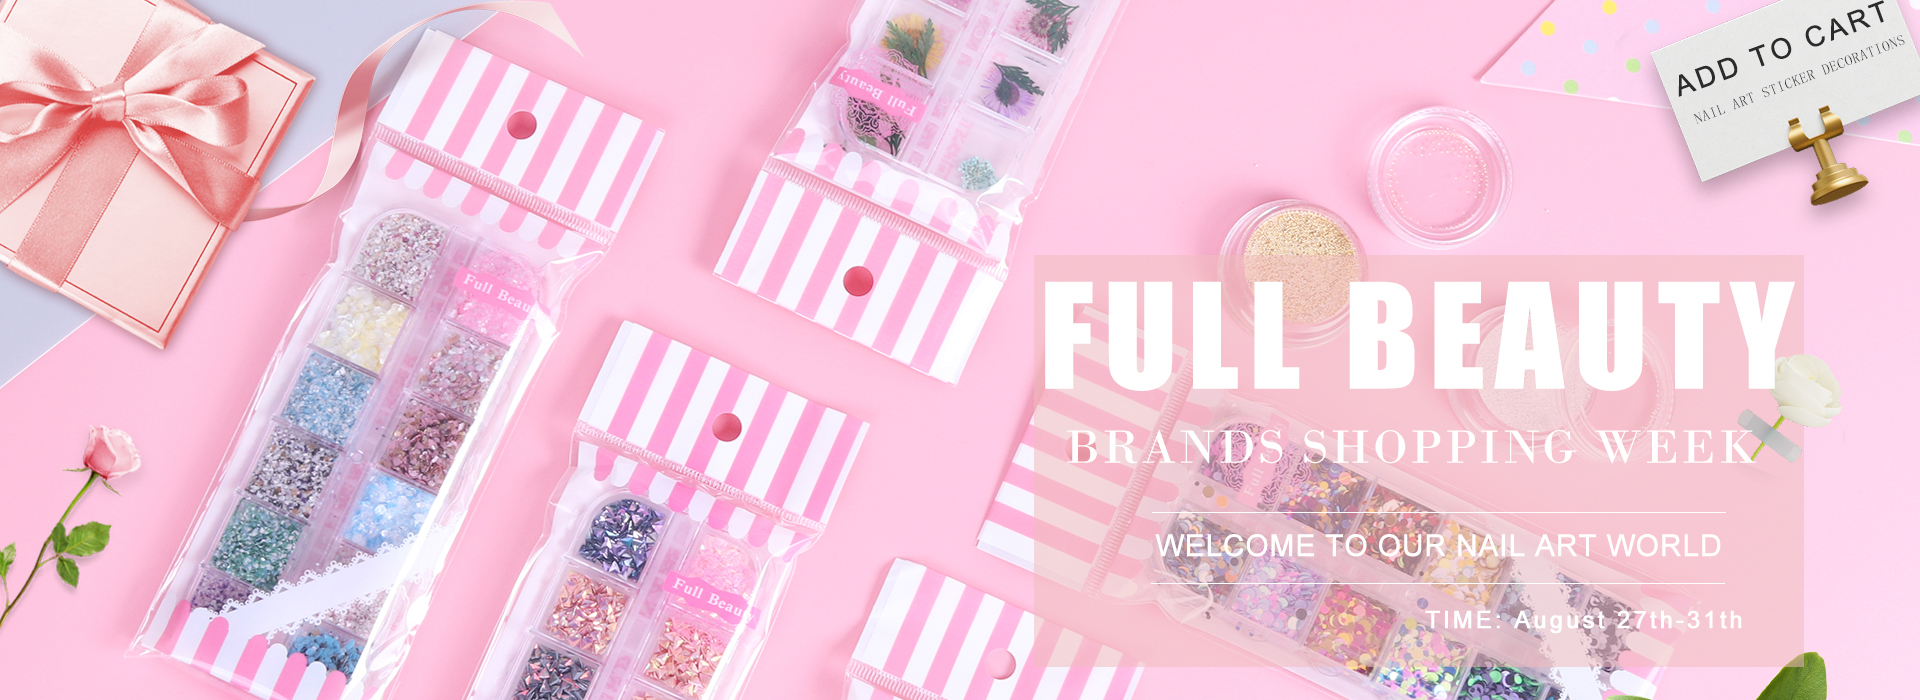 Full Beauty Official Store - Small Orders Online Store, Hot Selling ...